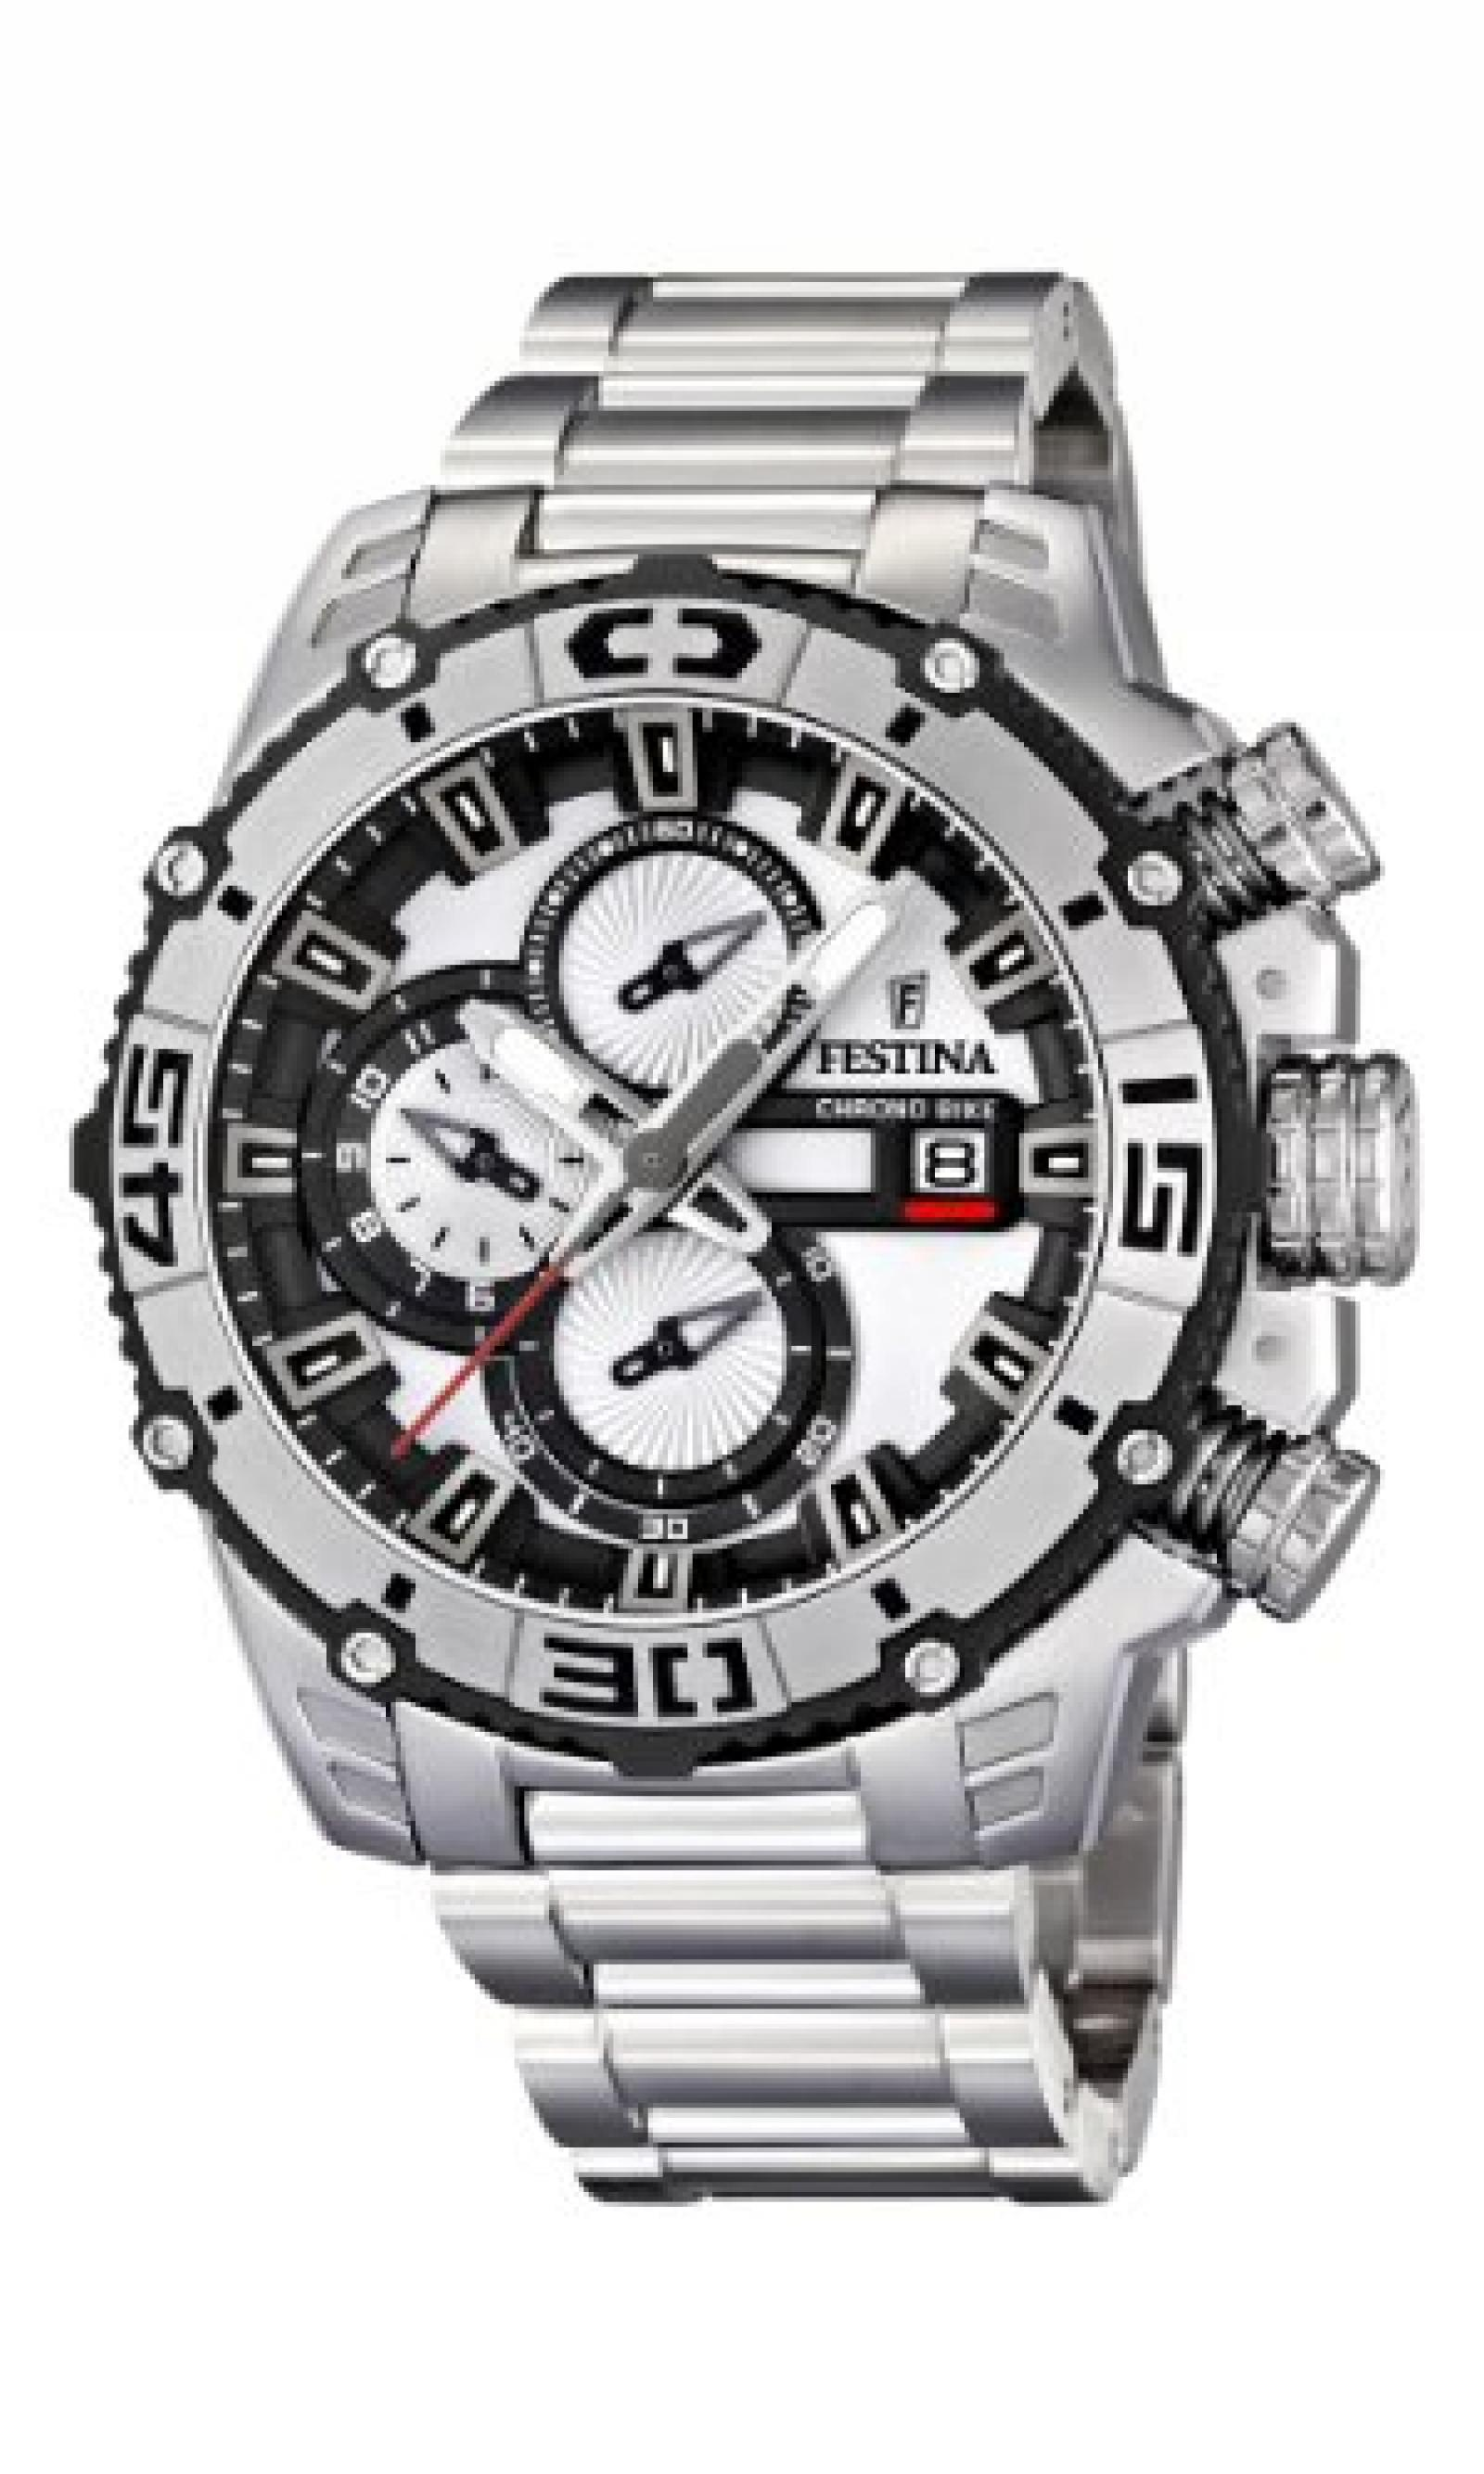 Festina Herren-Armbanduhr Tour Chrono Bike 2012 Analog Quarz F16599/1